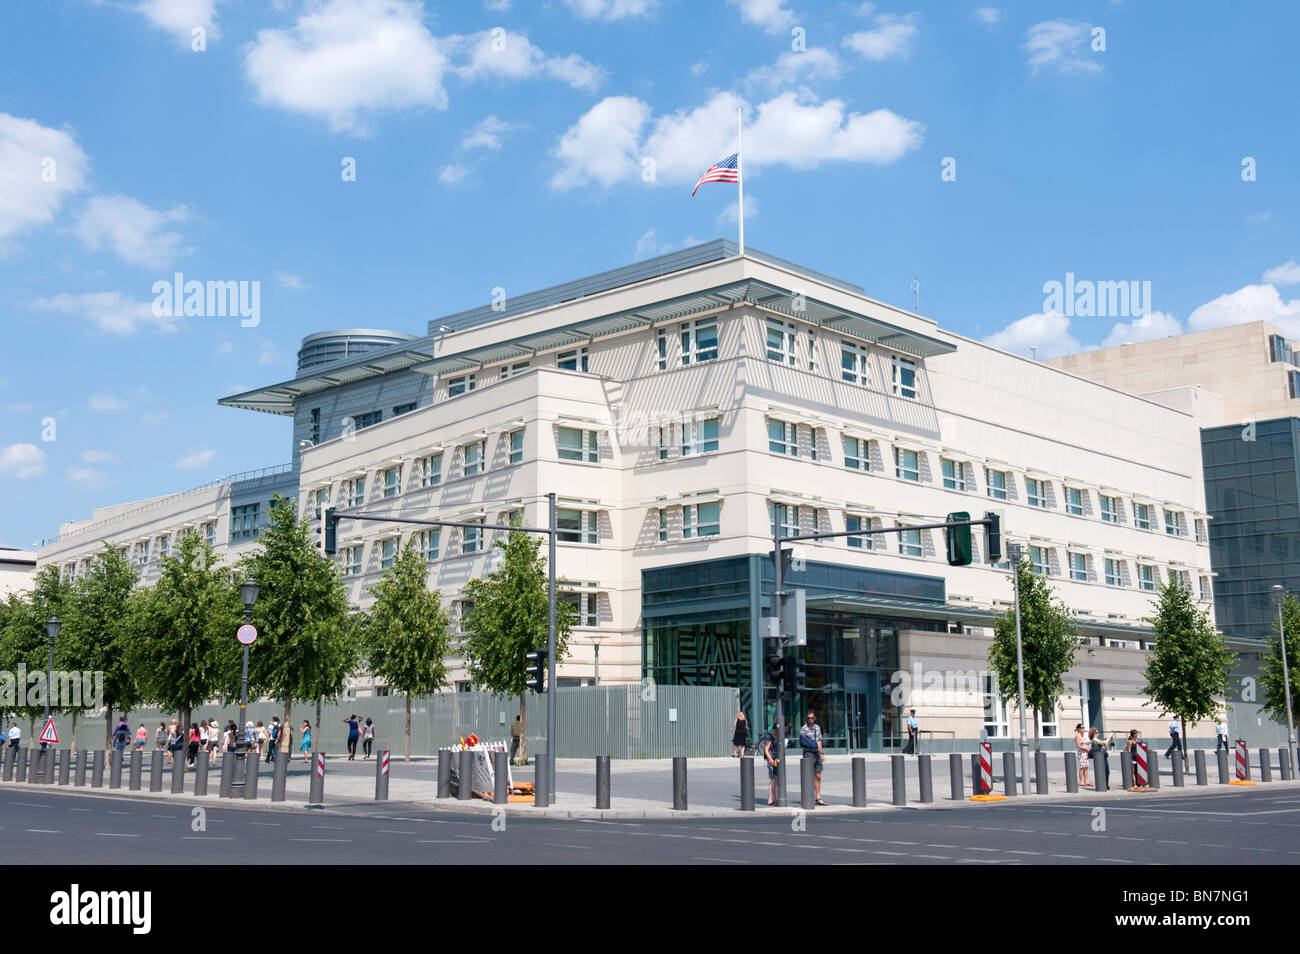 Exteror view of new Embassy of United States of America in Berlin Germany - Stock Image